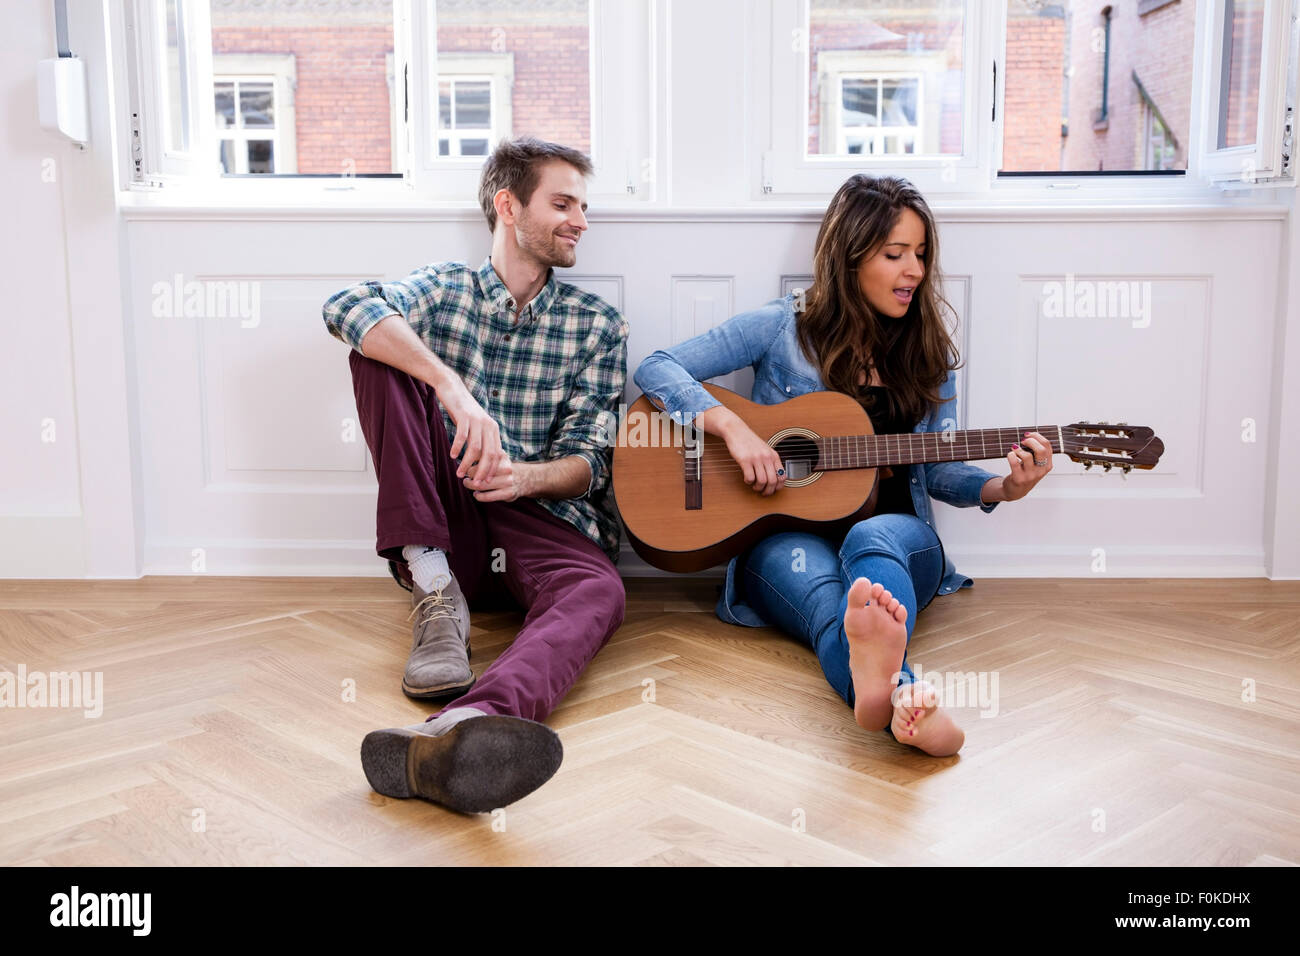 Young couple sitting on floor with woman playing guitar - Stock Image